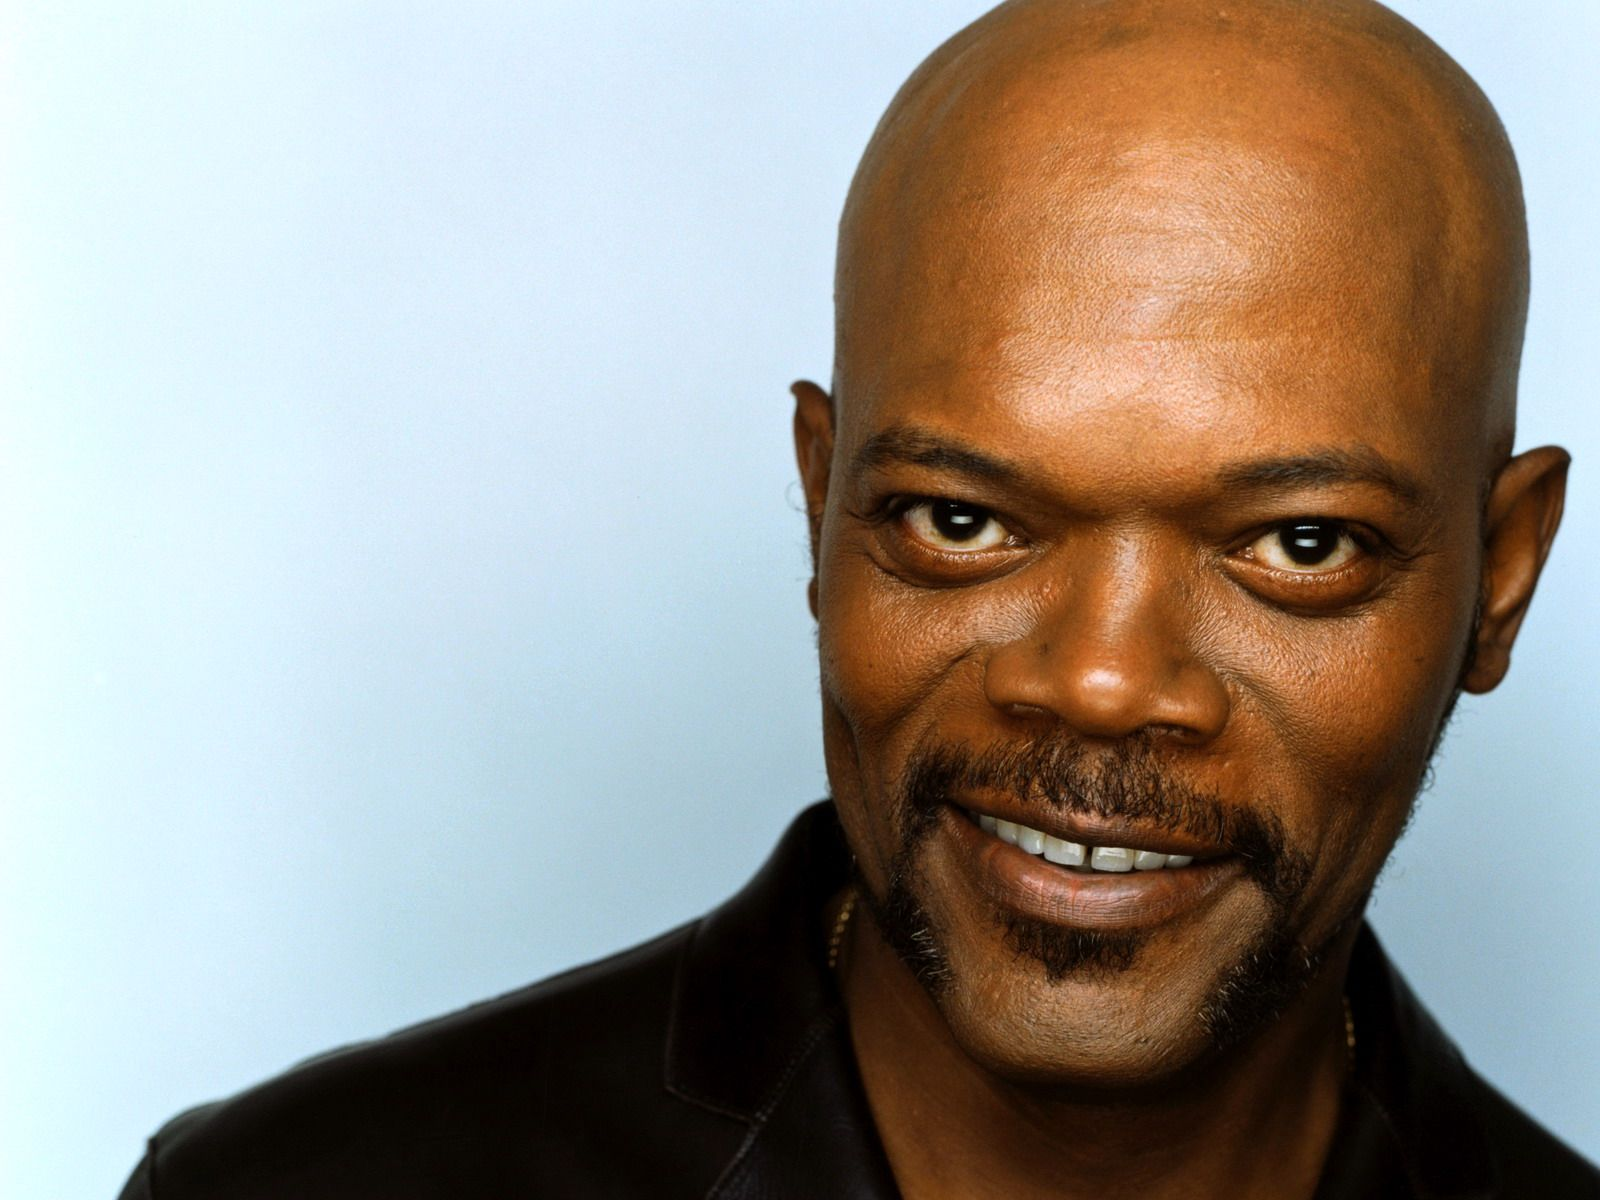 Samuel l jackson zombie movie